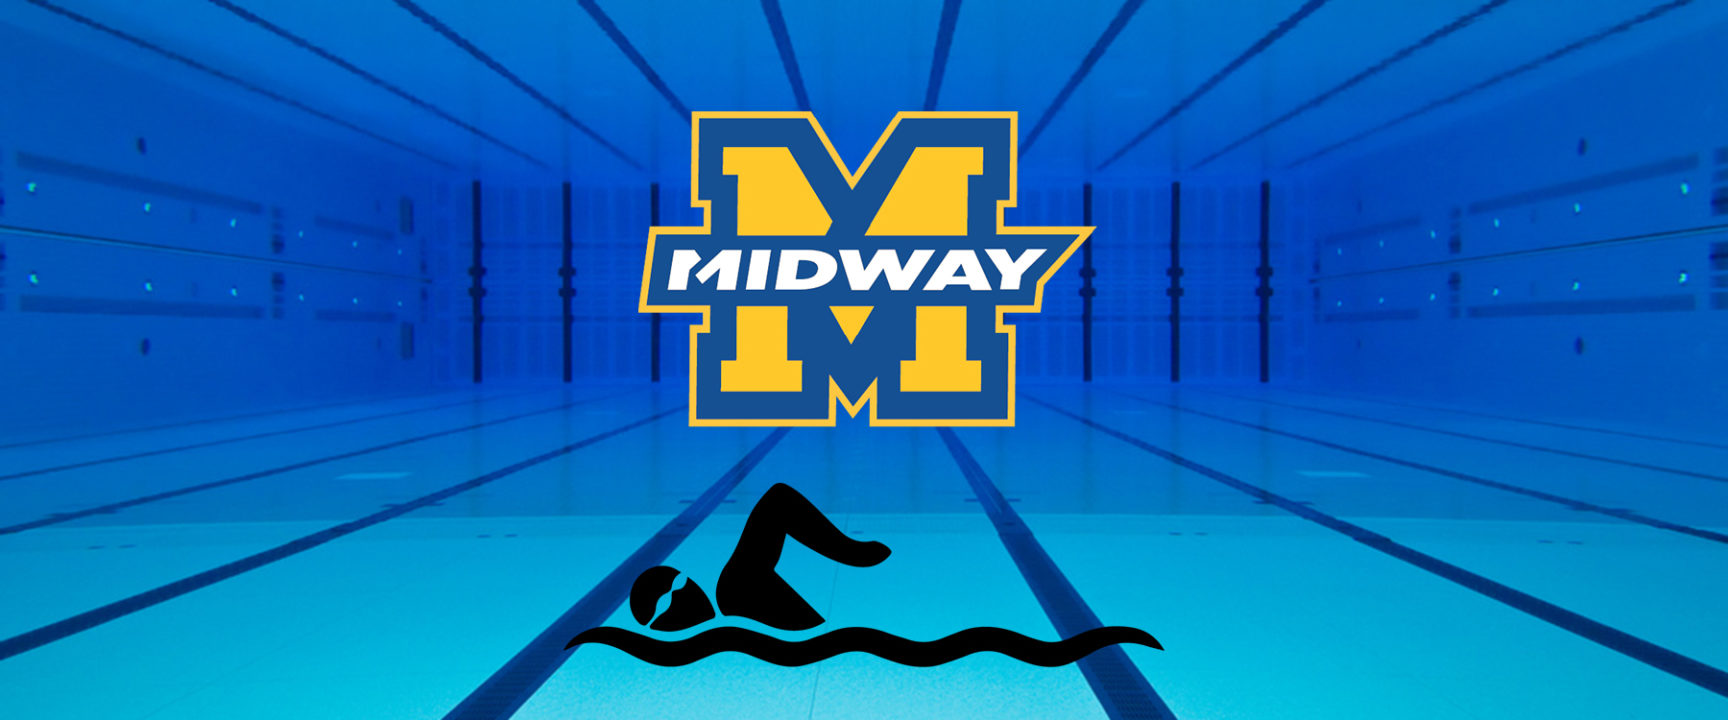 Midway University Will Add Men's, Women's Swimming; Hires First Head Coach